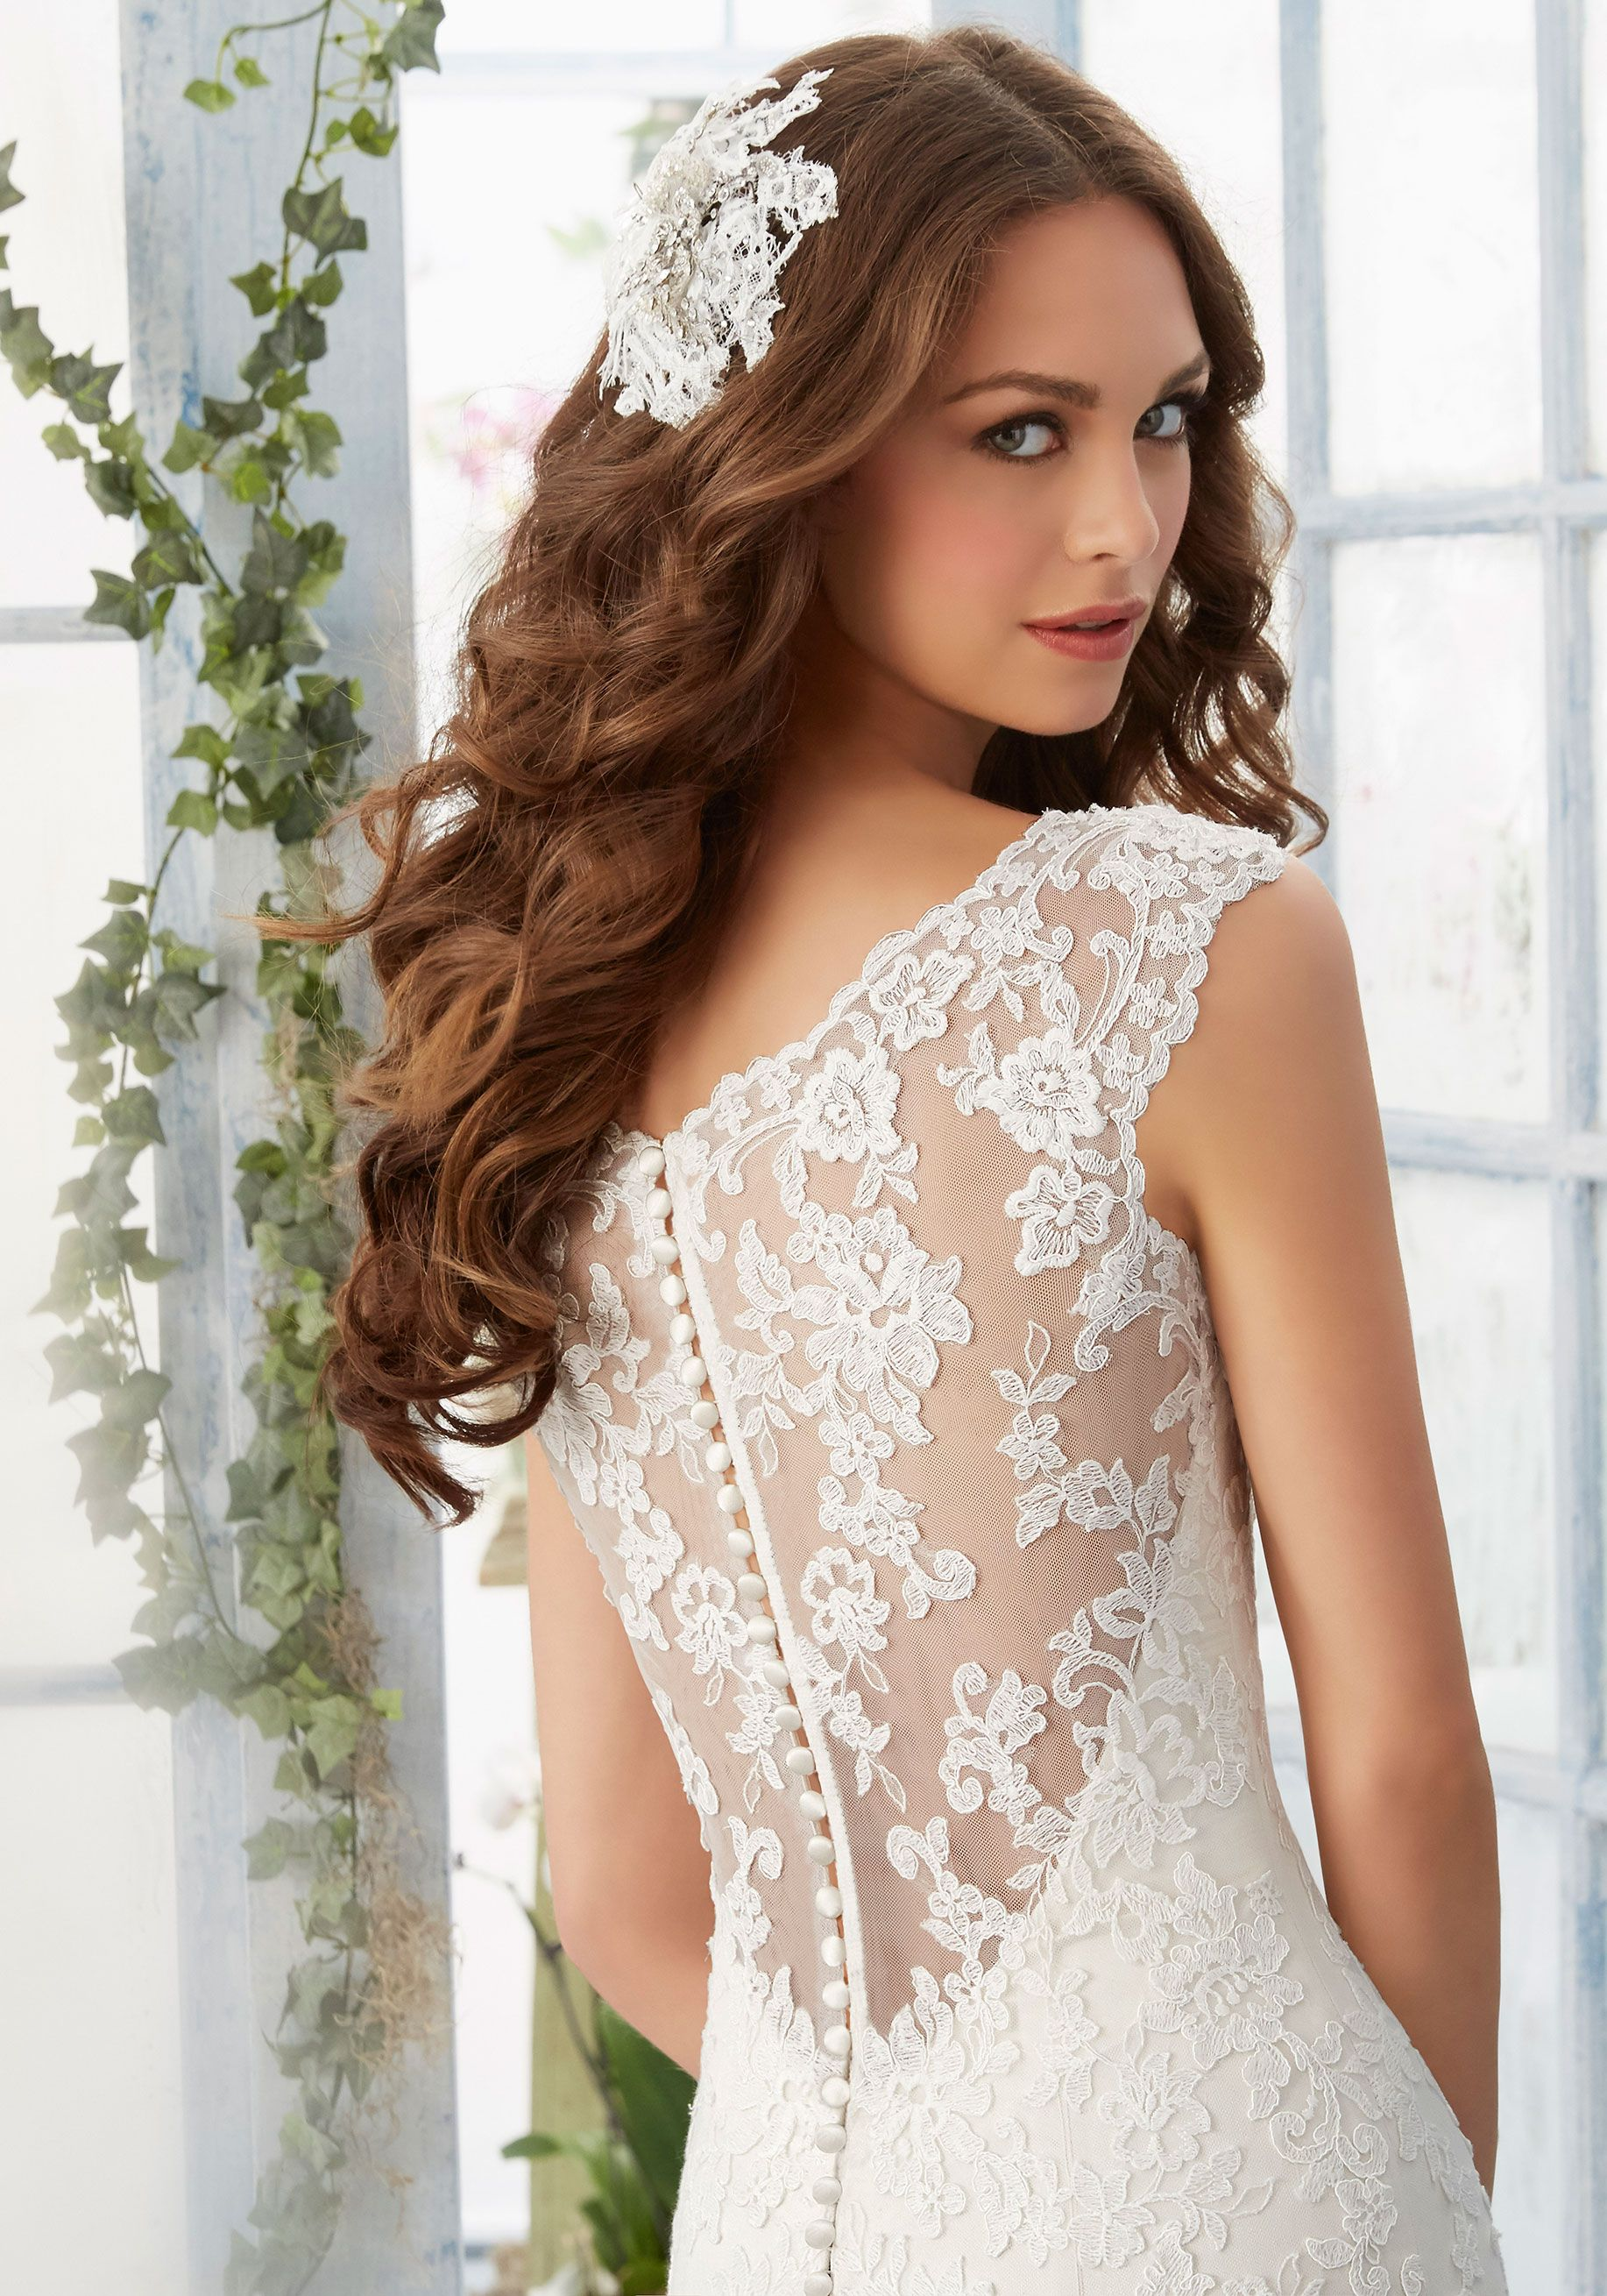 Color embroidered wedding dress  Soft smooth this satin wedding dress is accented with highly